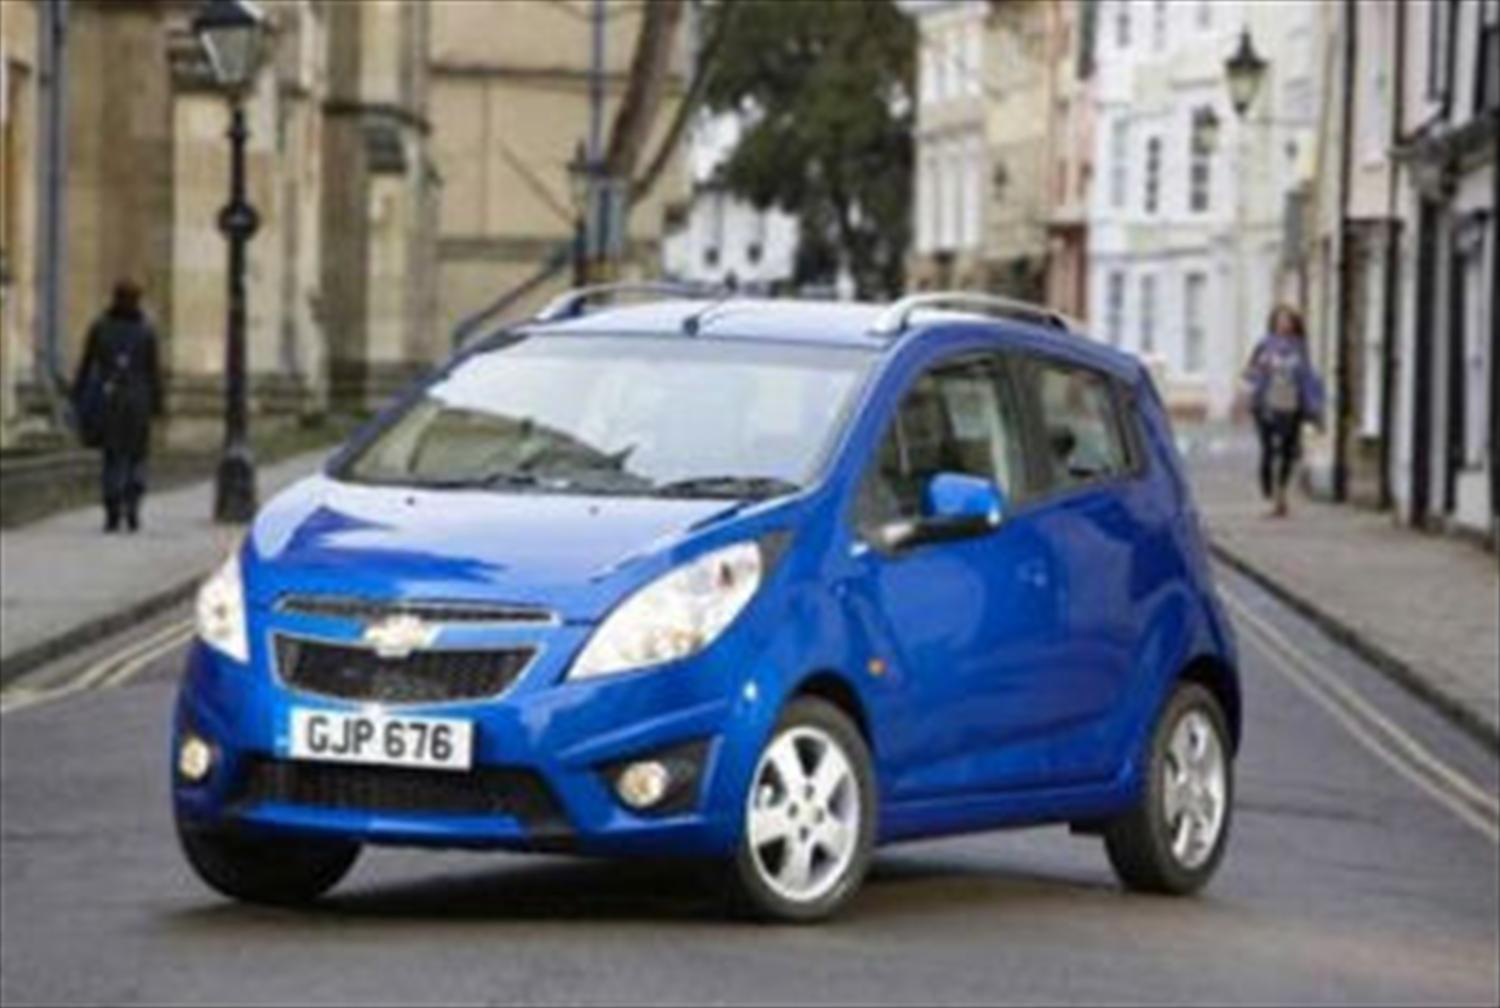 What is a supermini? A guide to car terms